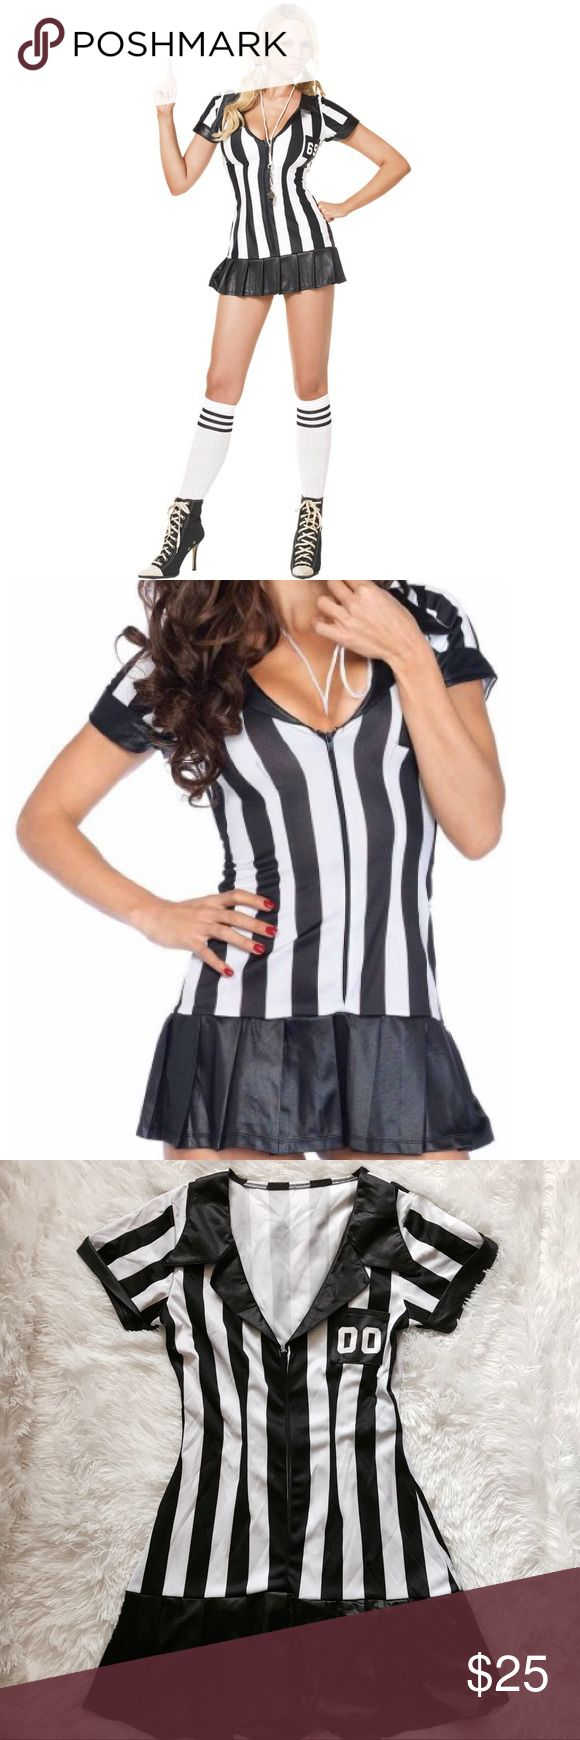 Why are referees uniforms black and white dress